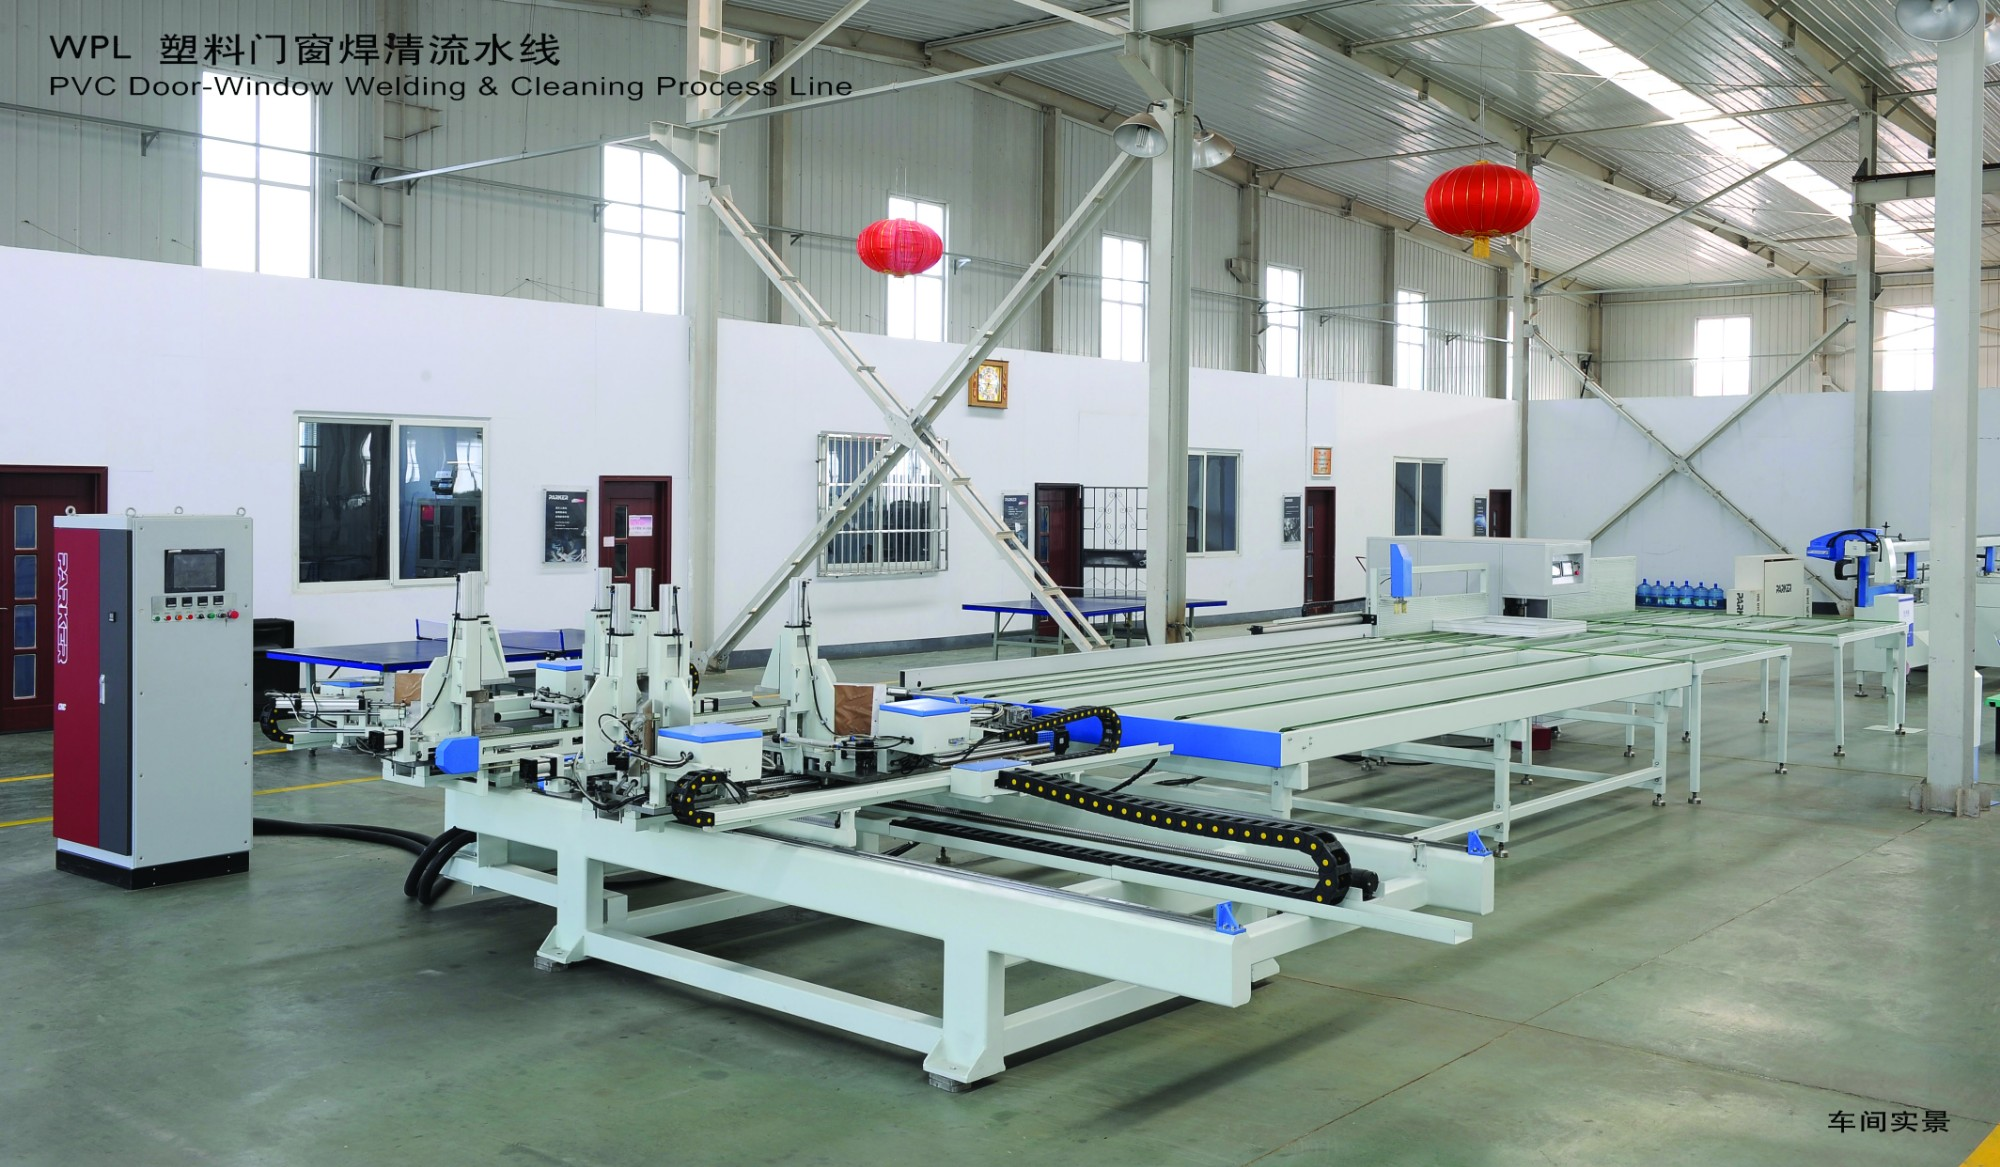 High quality PVC Welding And Cleaning Production Line Quotes,China PVC Welding And Cleaning Production Line Factory,PVC Welding And Cleaning Production Line Purchasing